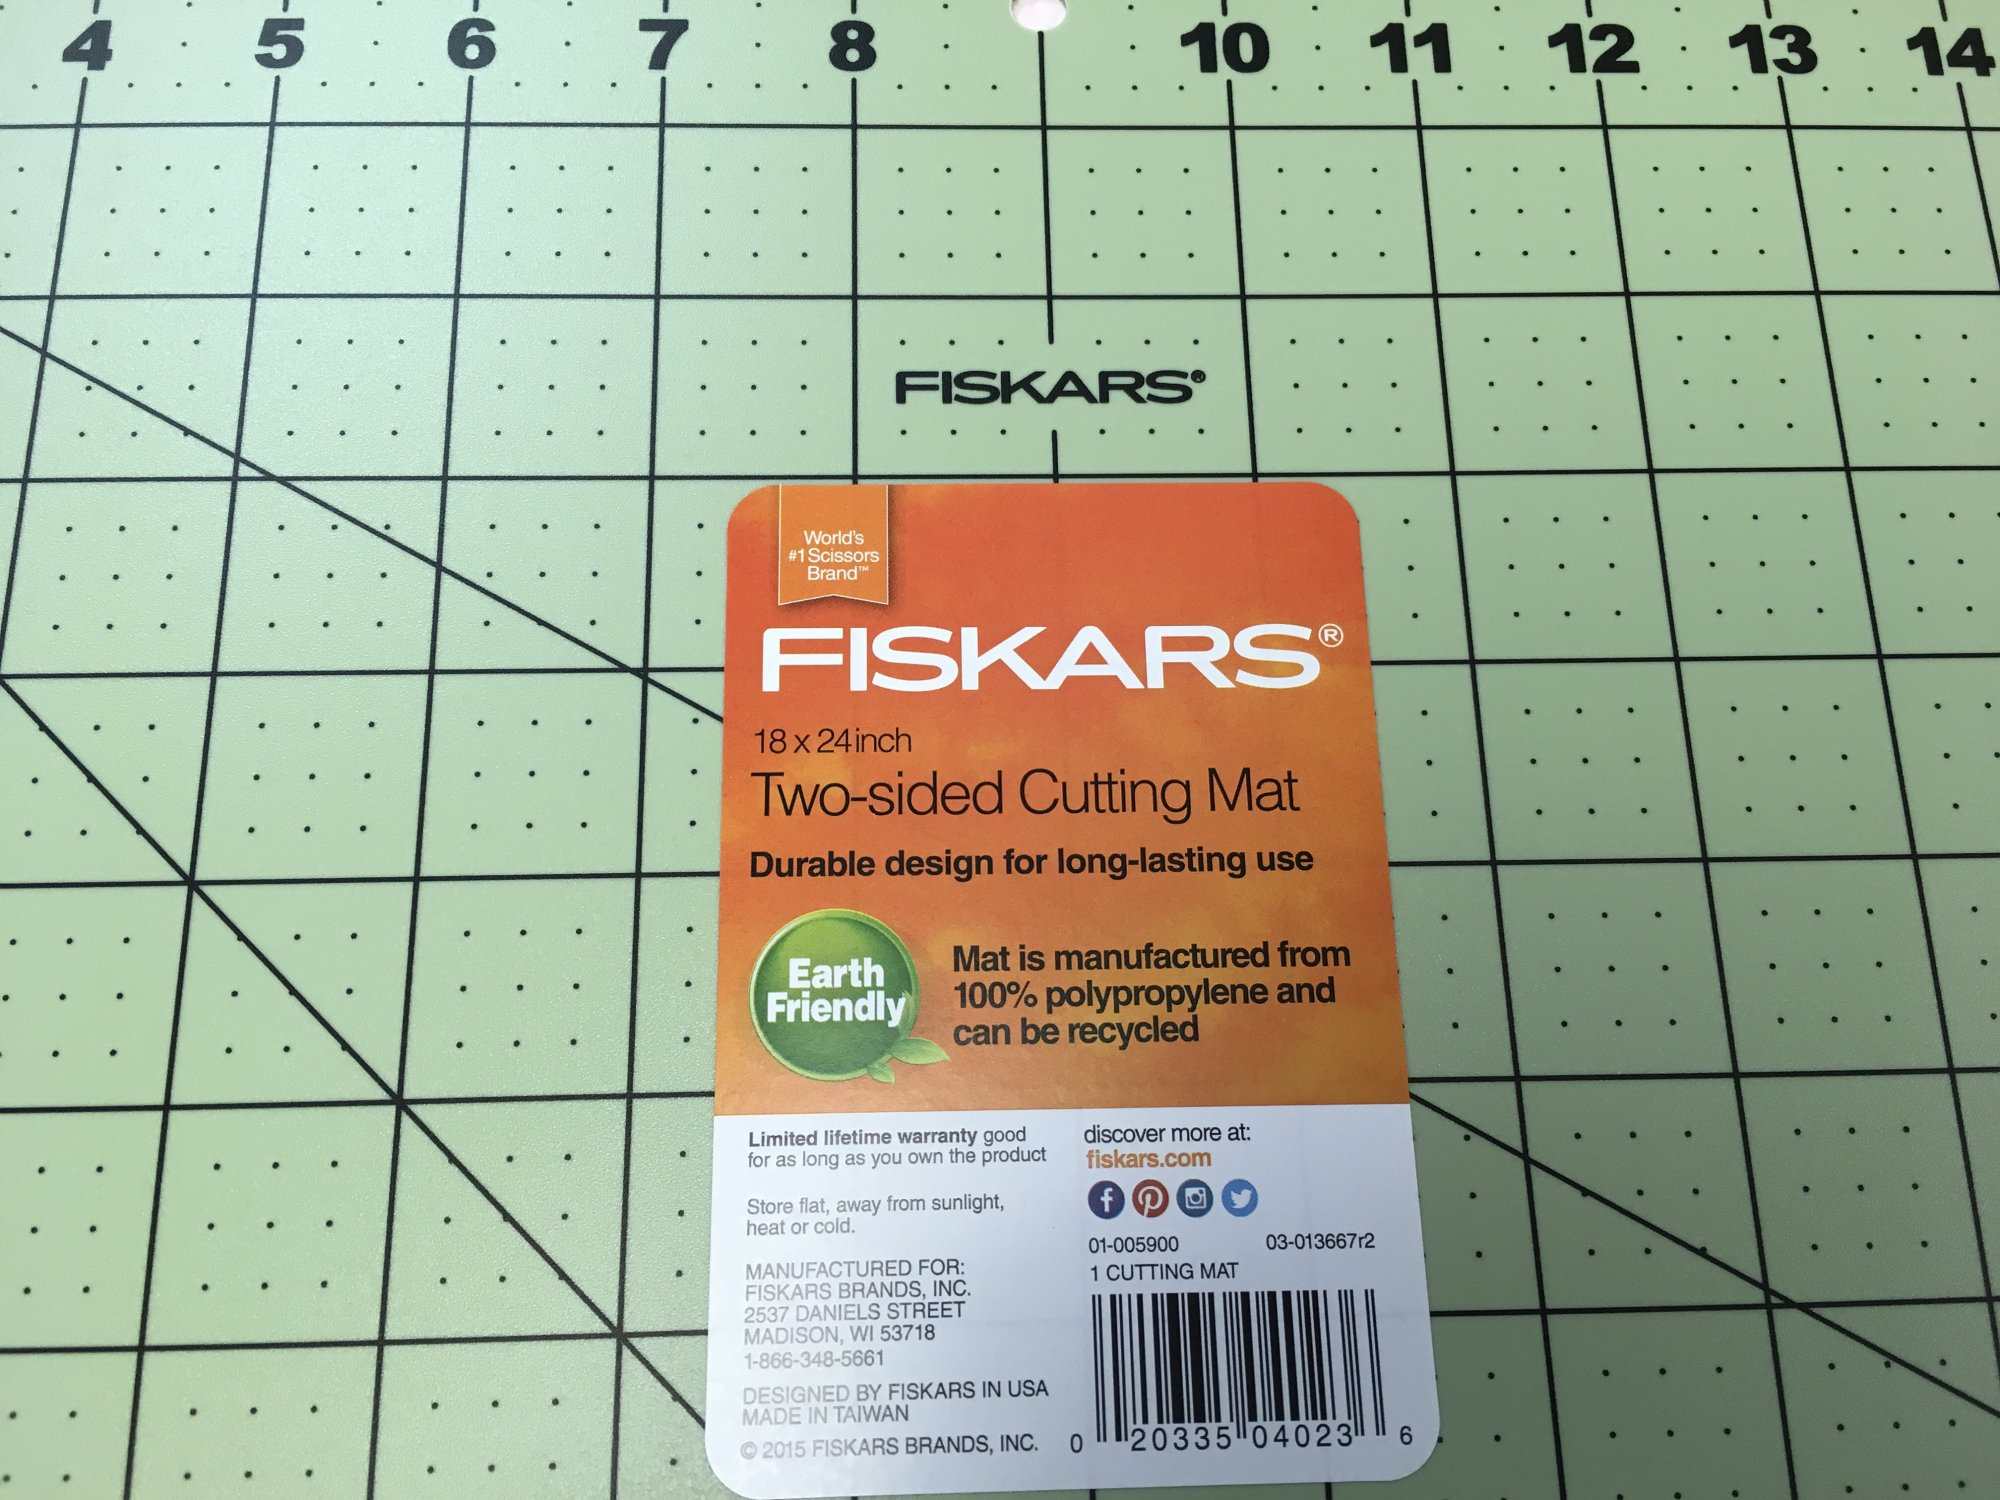 Fiskars Two-Sided,  Earth Friendly Cutting Mat 18 x 24